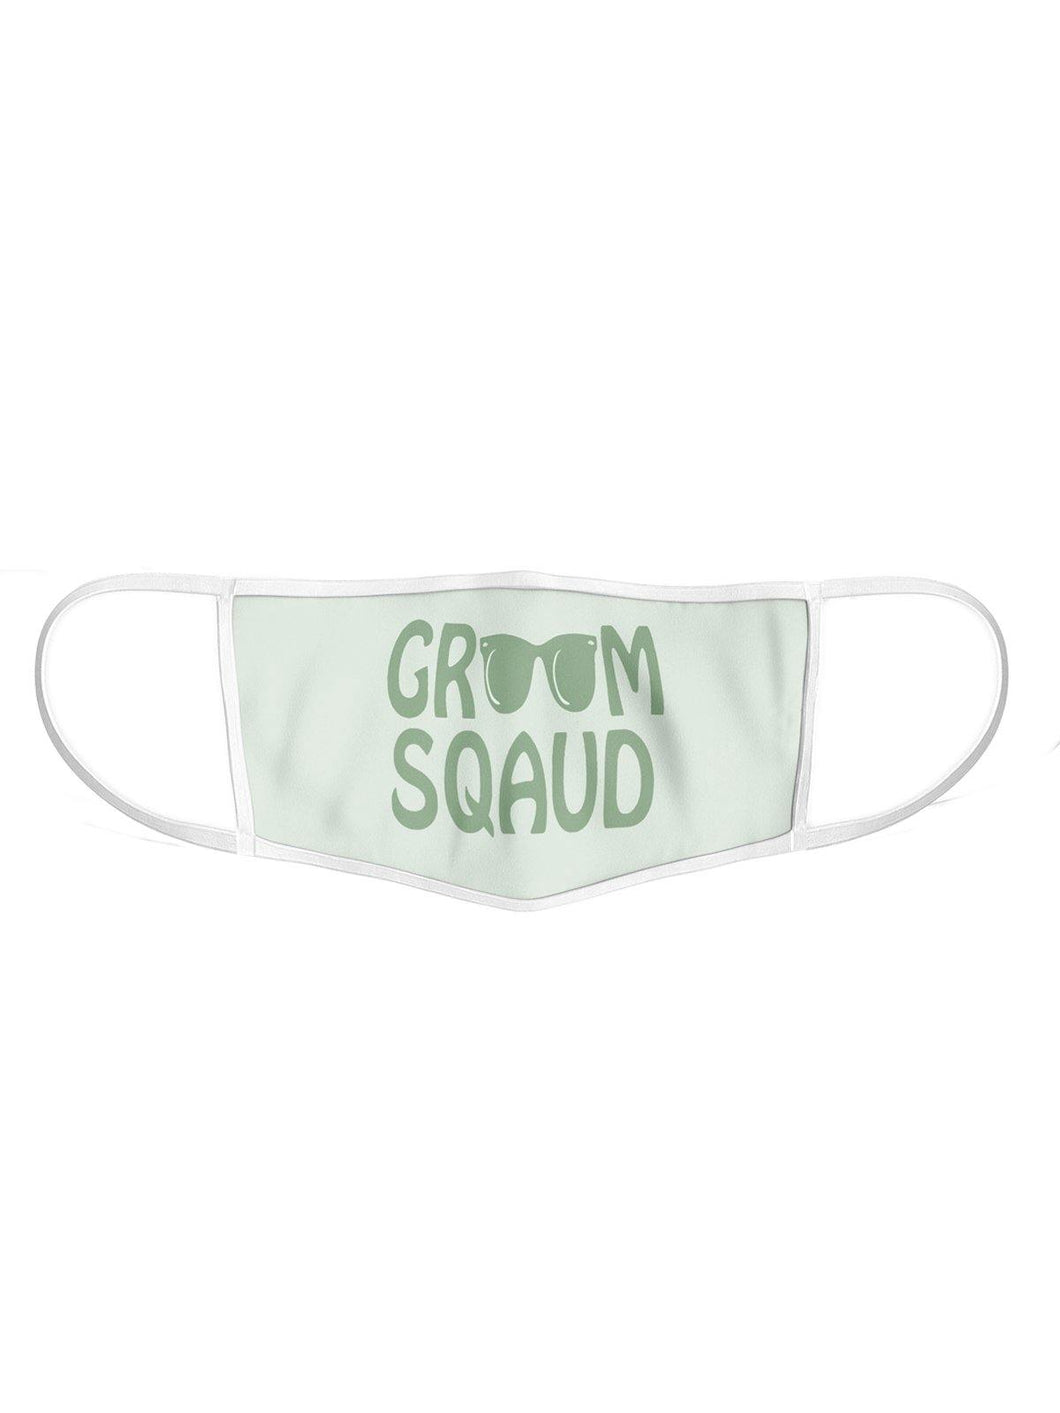 Set of 5 - Green & White Printed Groom Squad Masks